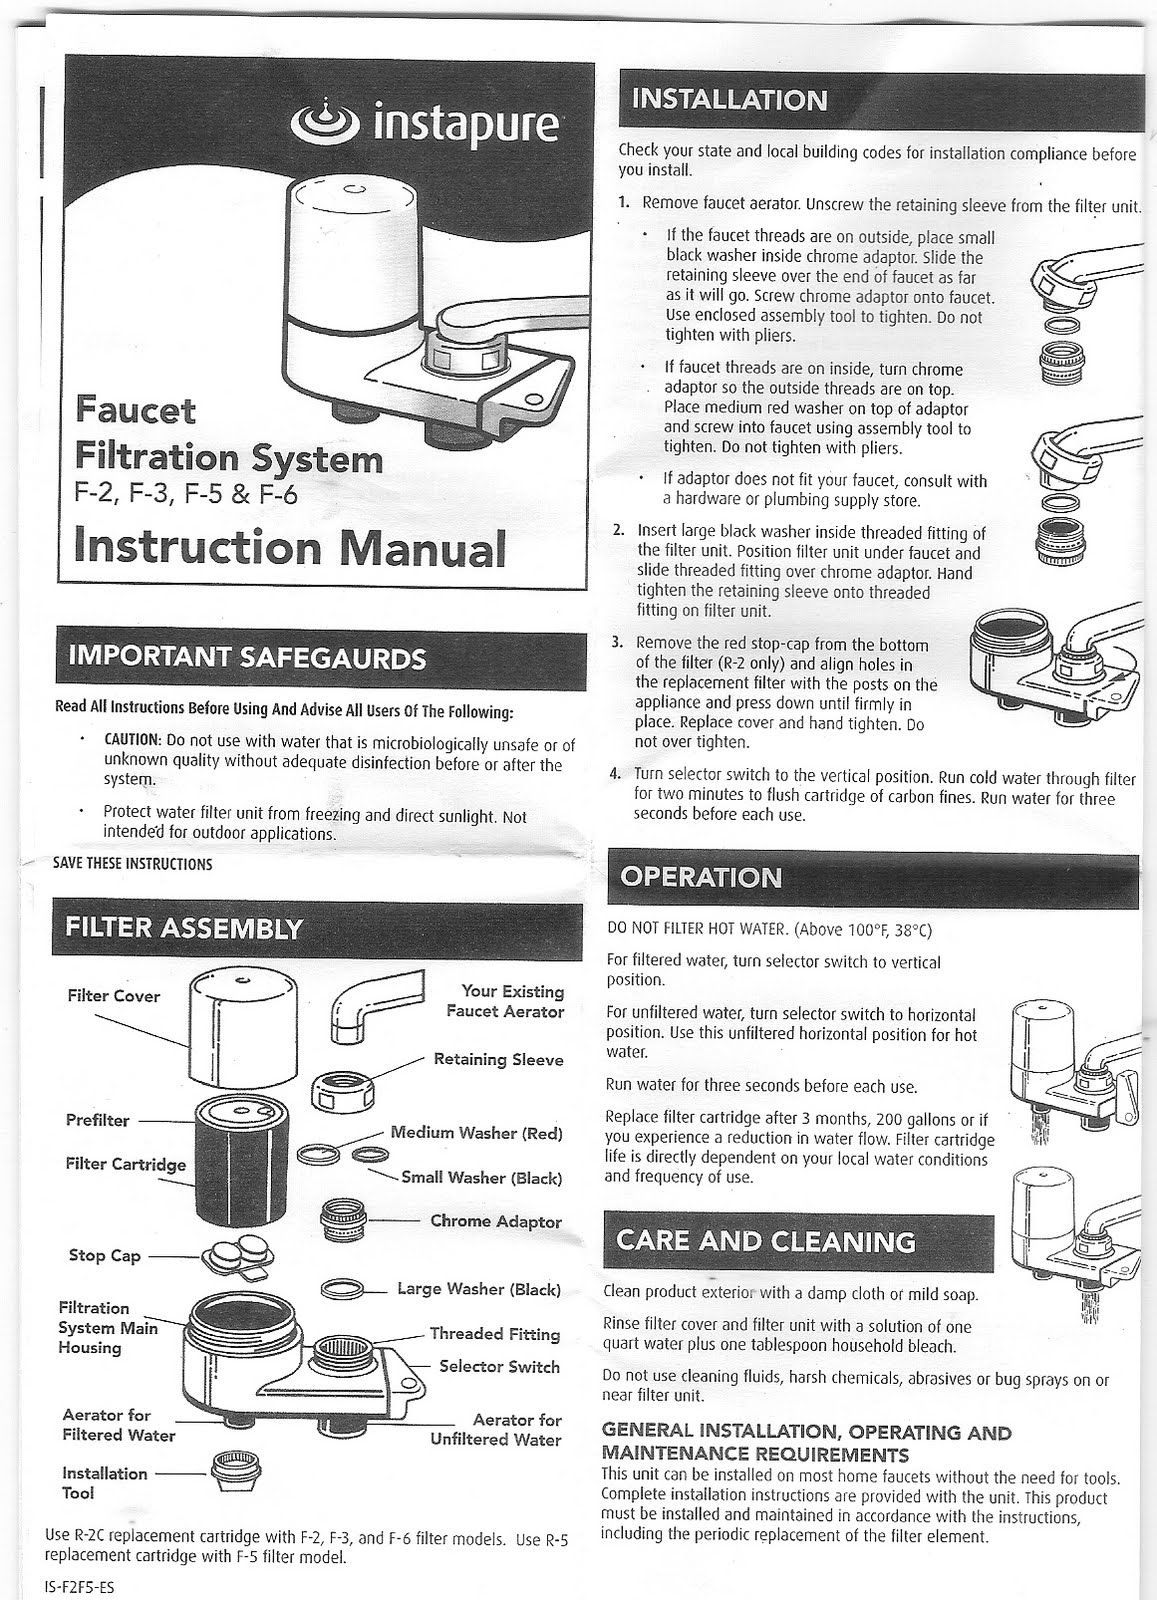 Instapure F2 Faucet Water Filter System Operating Instruction Manual Pages  1 and 2